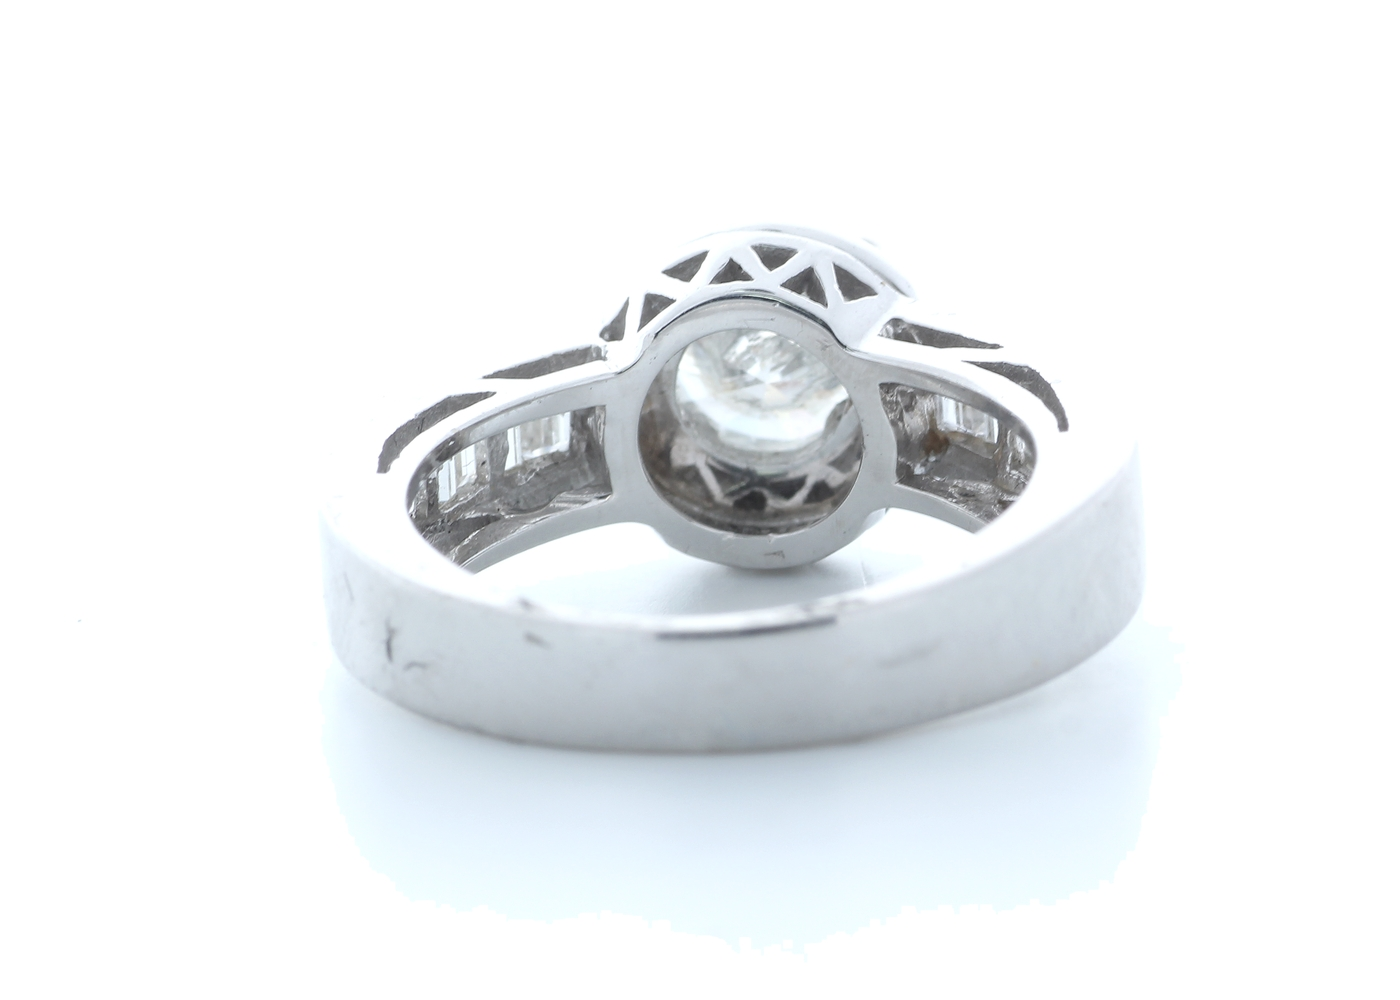 18ct White Gold Single Stone With Halo Setting Ring 2.62 (1.22) Carats - Image 3 of 5